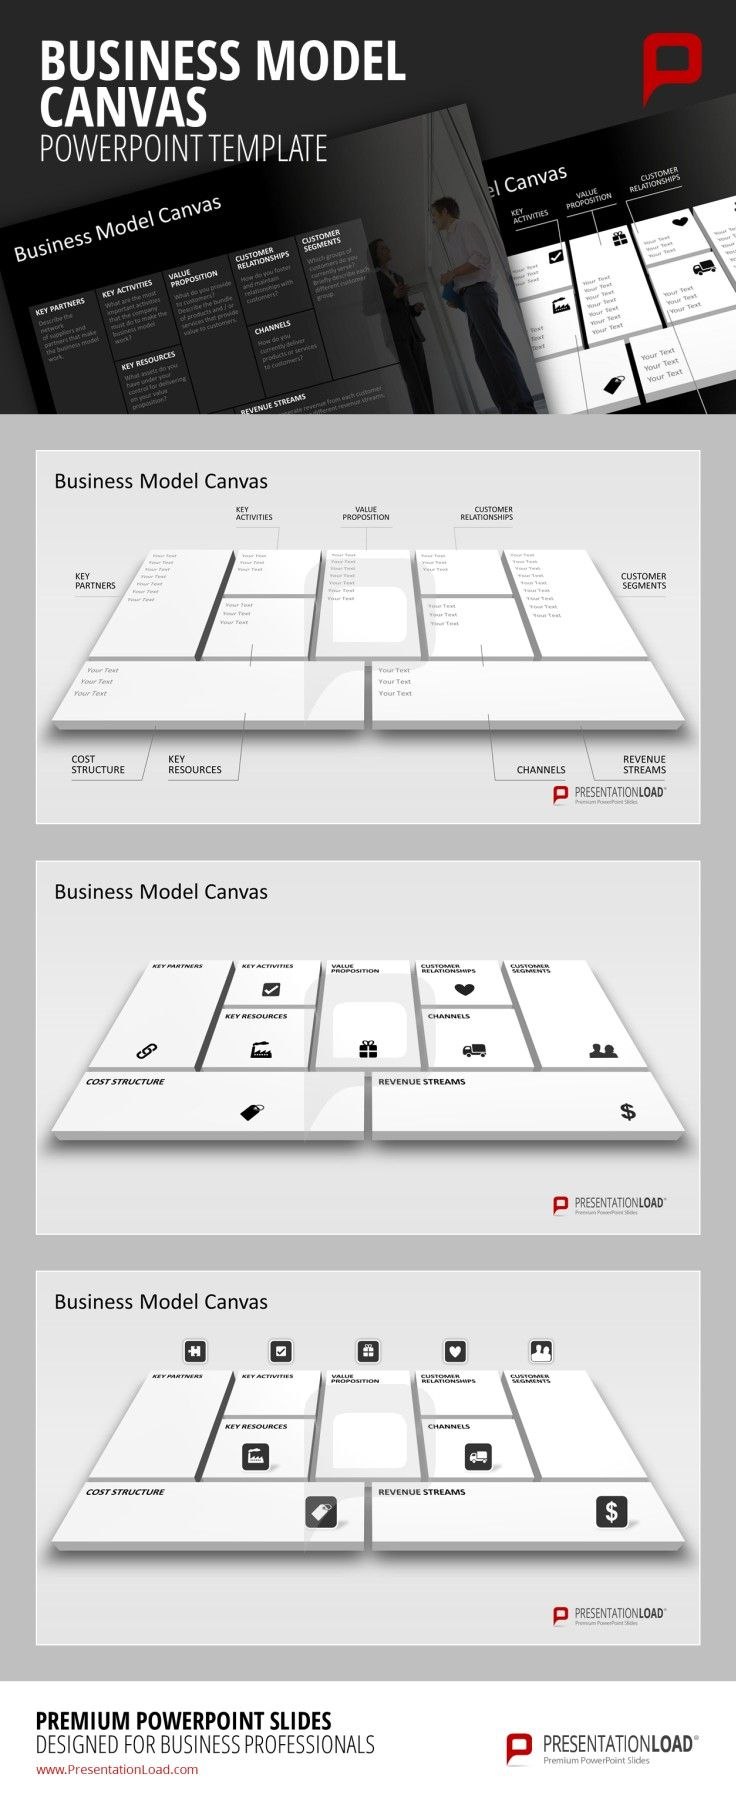 37 best business model canvas powerpoint templates images on business model canvas powerpoint template the management tool business model canvas was developed according to alexander osterwalder toneelgroepblik Image collections